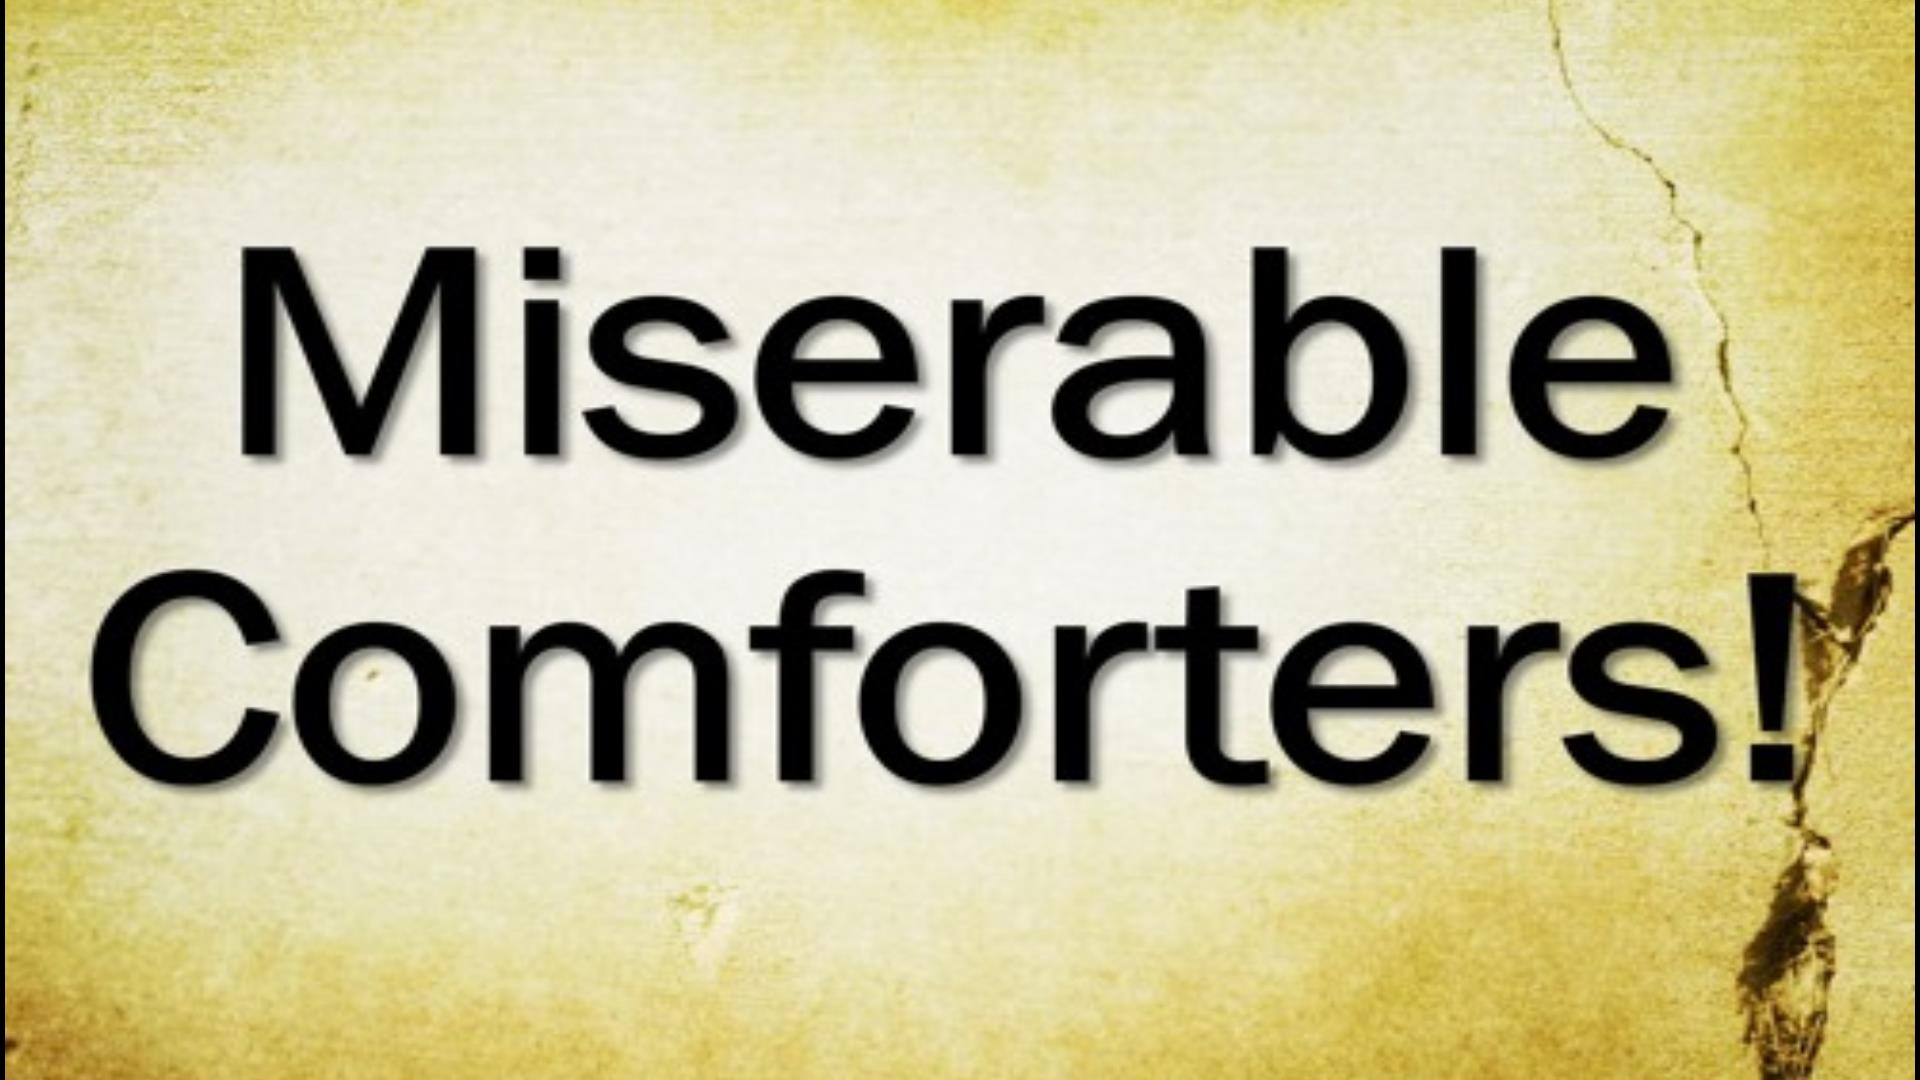 Miserable Comforters